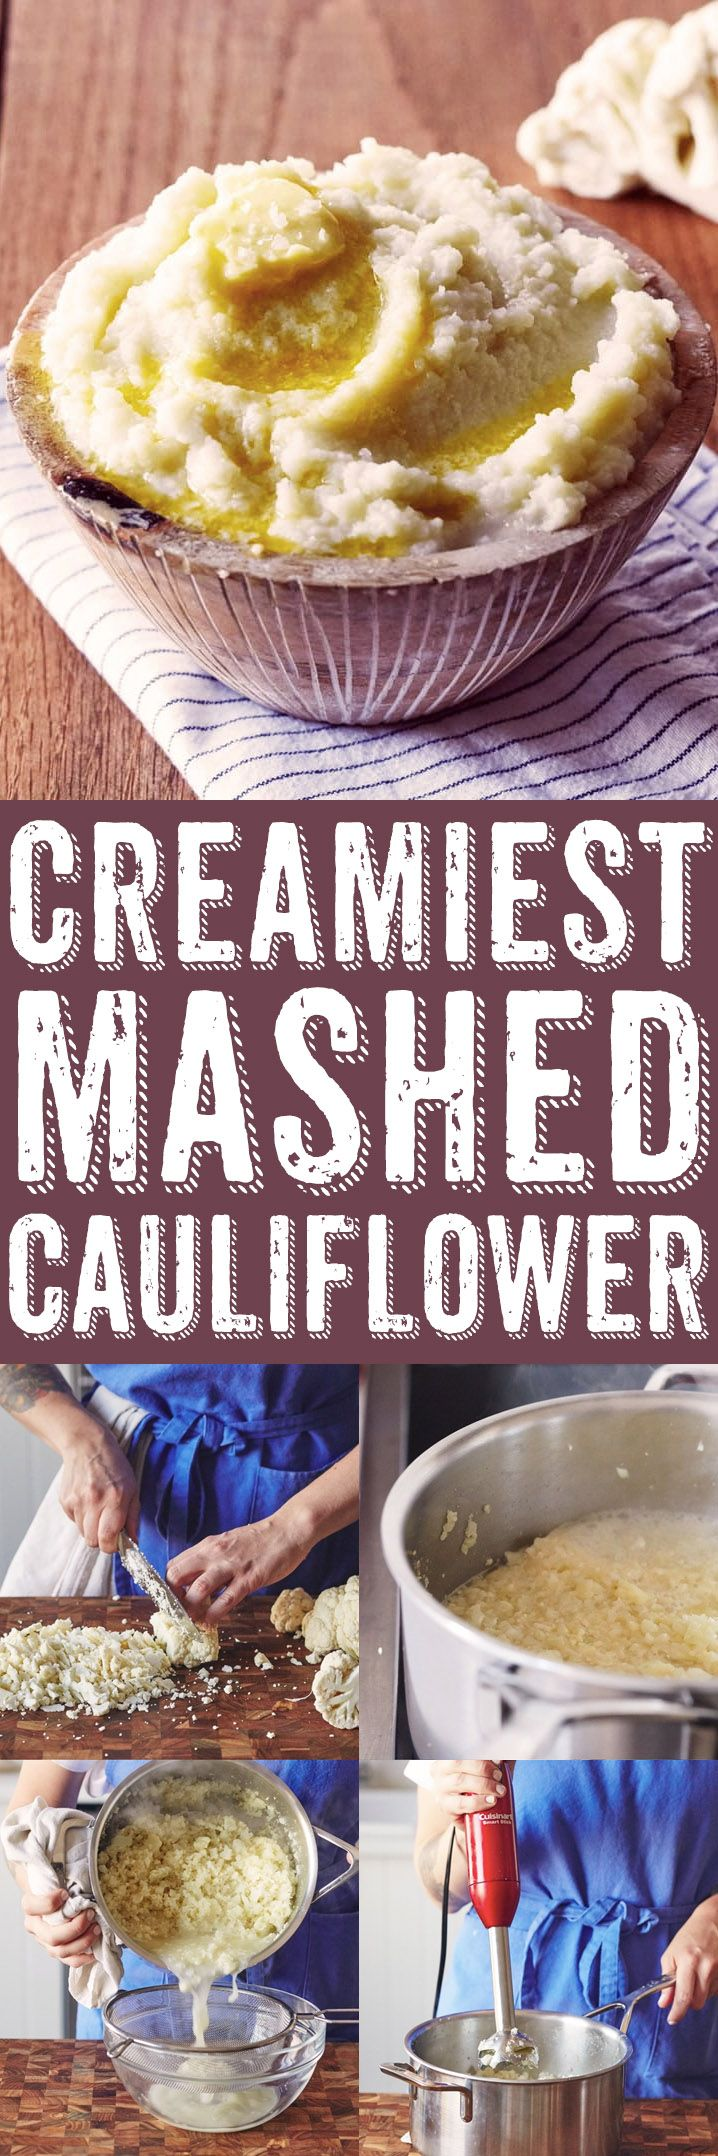 How To Make the Creamiest Mashed Cauliflower Side Dish Recipe. This is low carb recipe is easy, healthy, vegan and totally unique! There's absolutely no dairy -- meaning you don't need cream to make this easy weeknight side. Great if you're looking for frozen cauliflower recipes or side dishes, or a replacement for mashed potatoes.